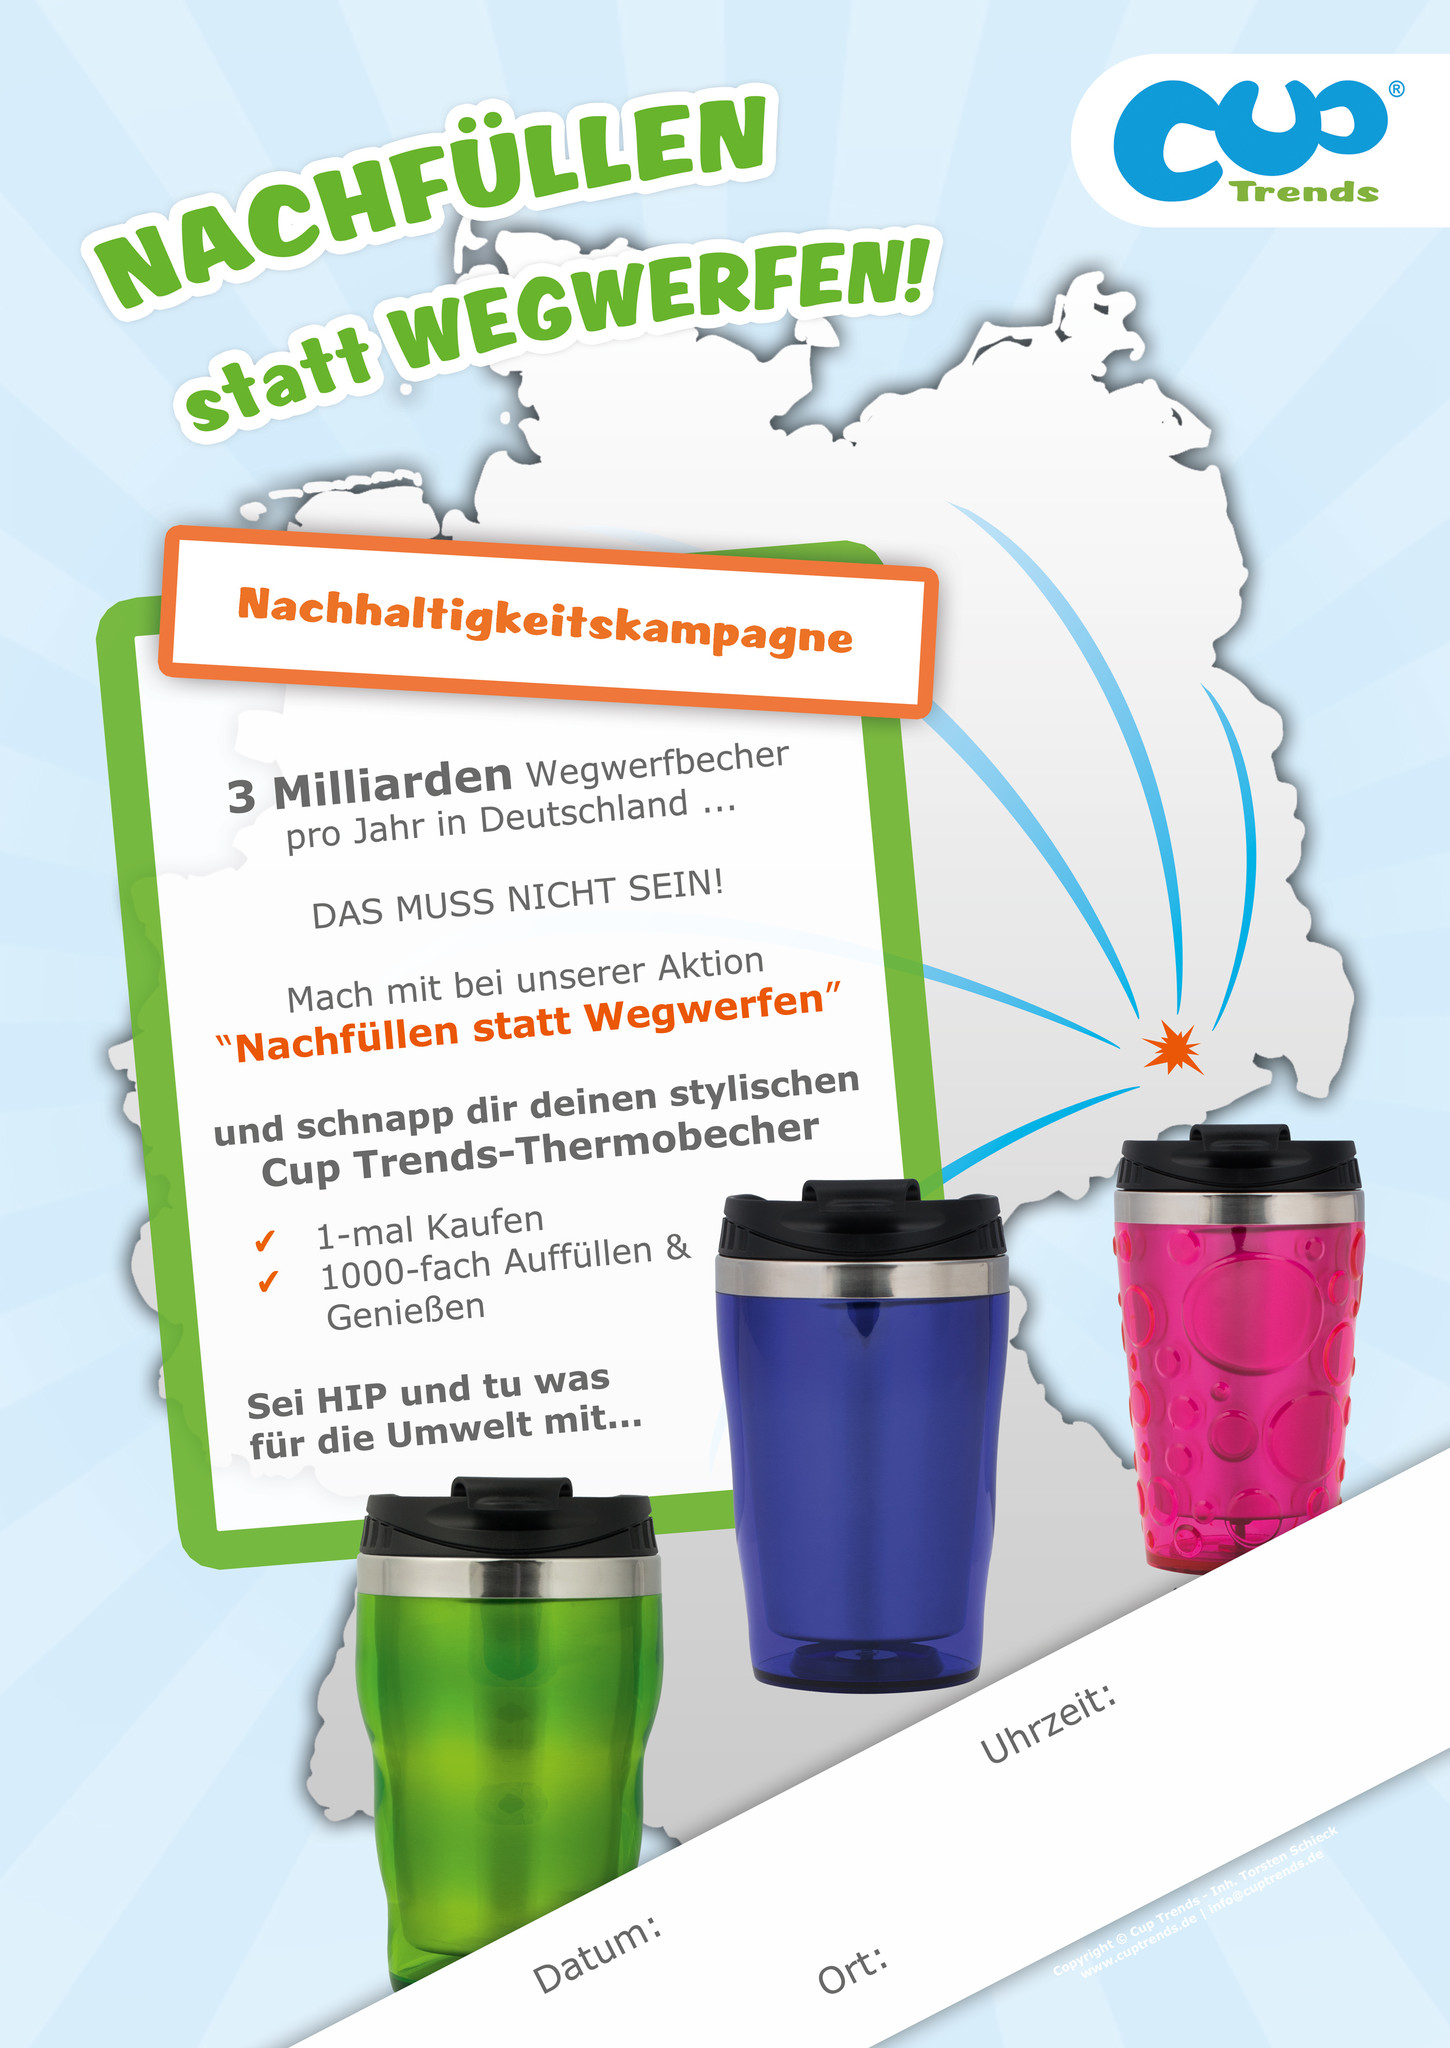 Cup Trends - Kampagne